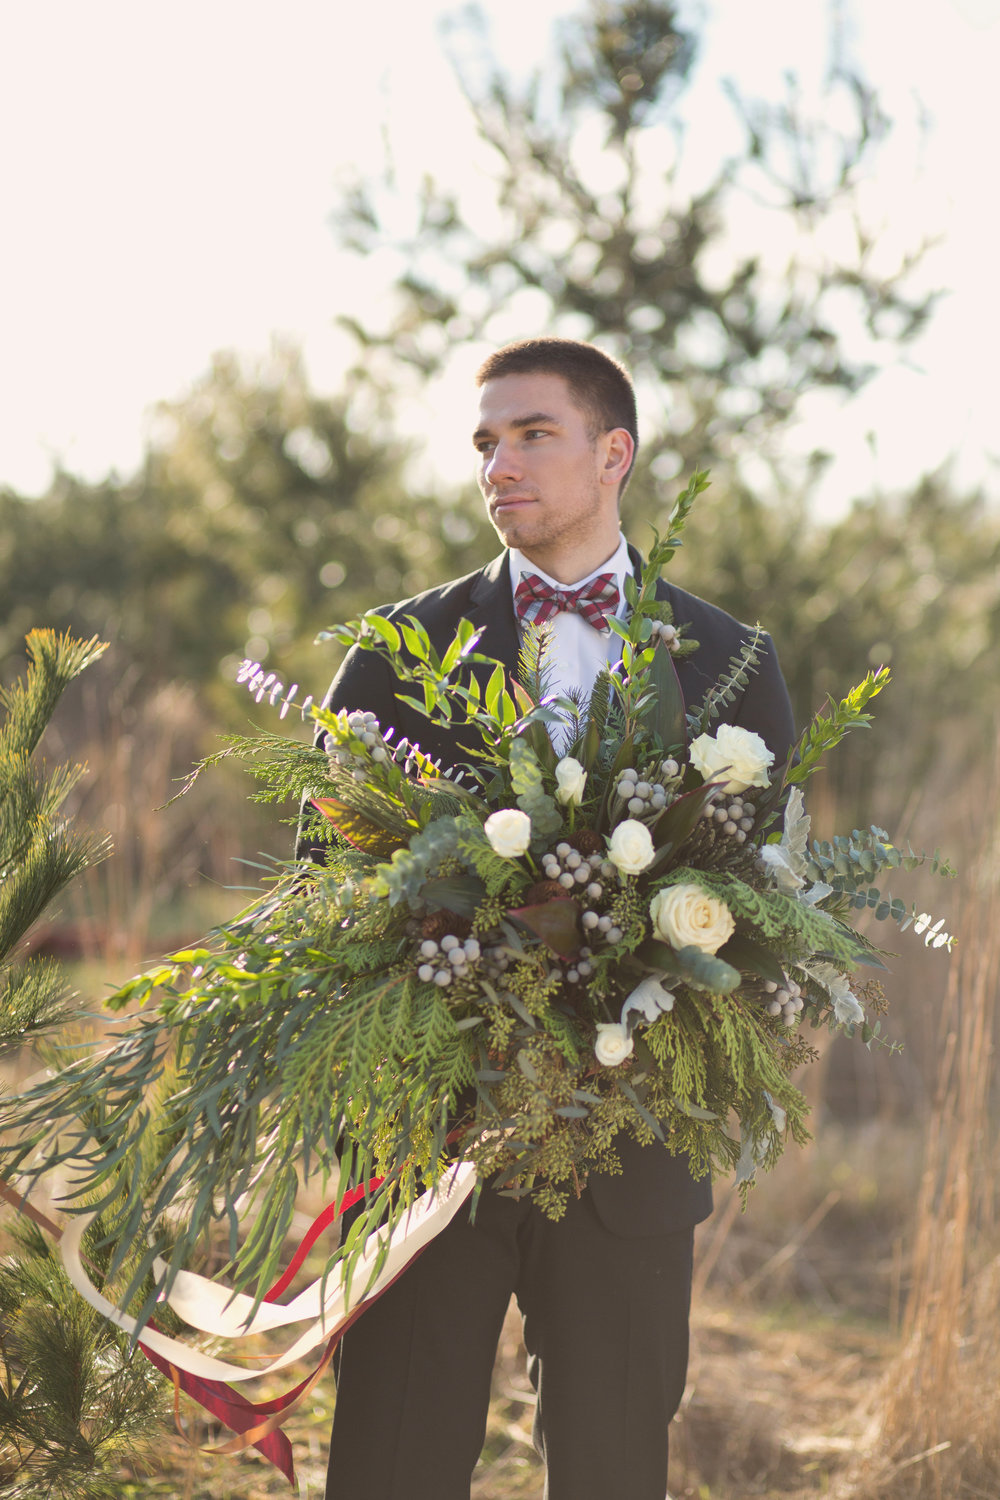 Christmas Wedding Inspiration from Shelby Photography, Adore Bridal, Le Fleur Floral Design & Events, Morton Rentals, Dash/Wood and Something Old Event Rentals at the Red Barn Tree Shop in Morton, IL